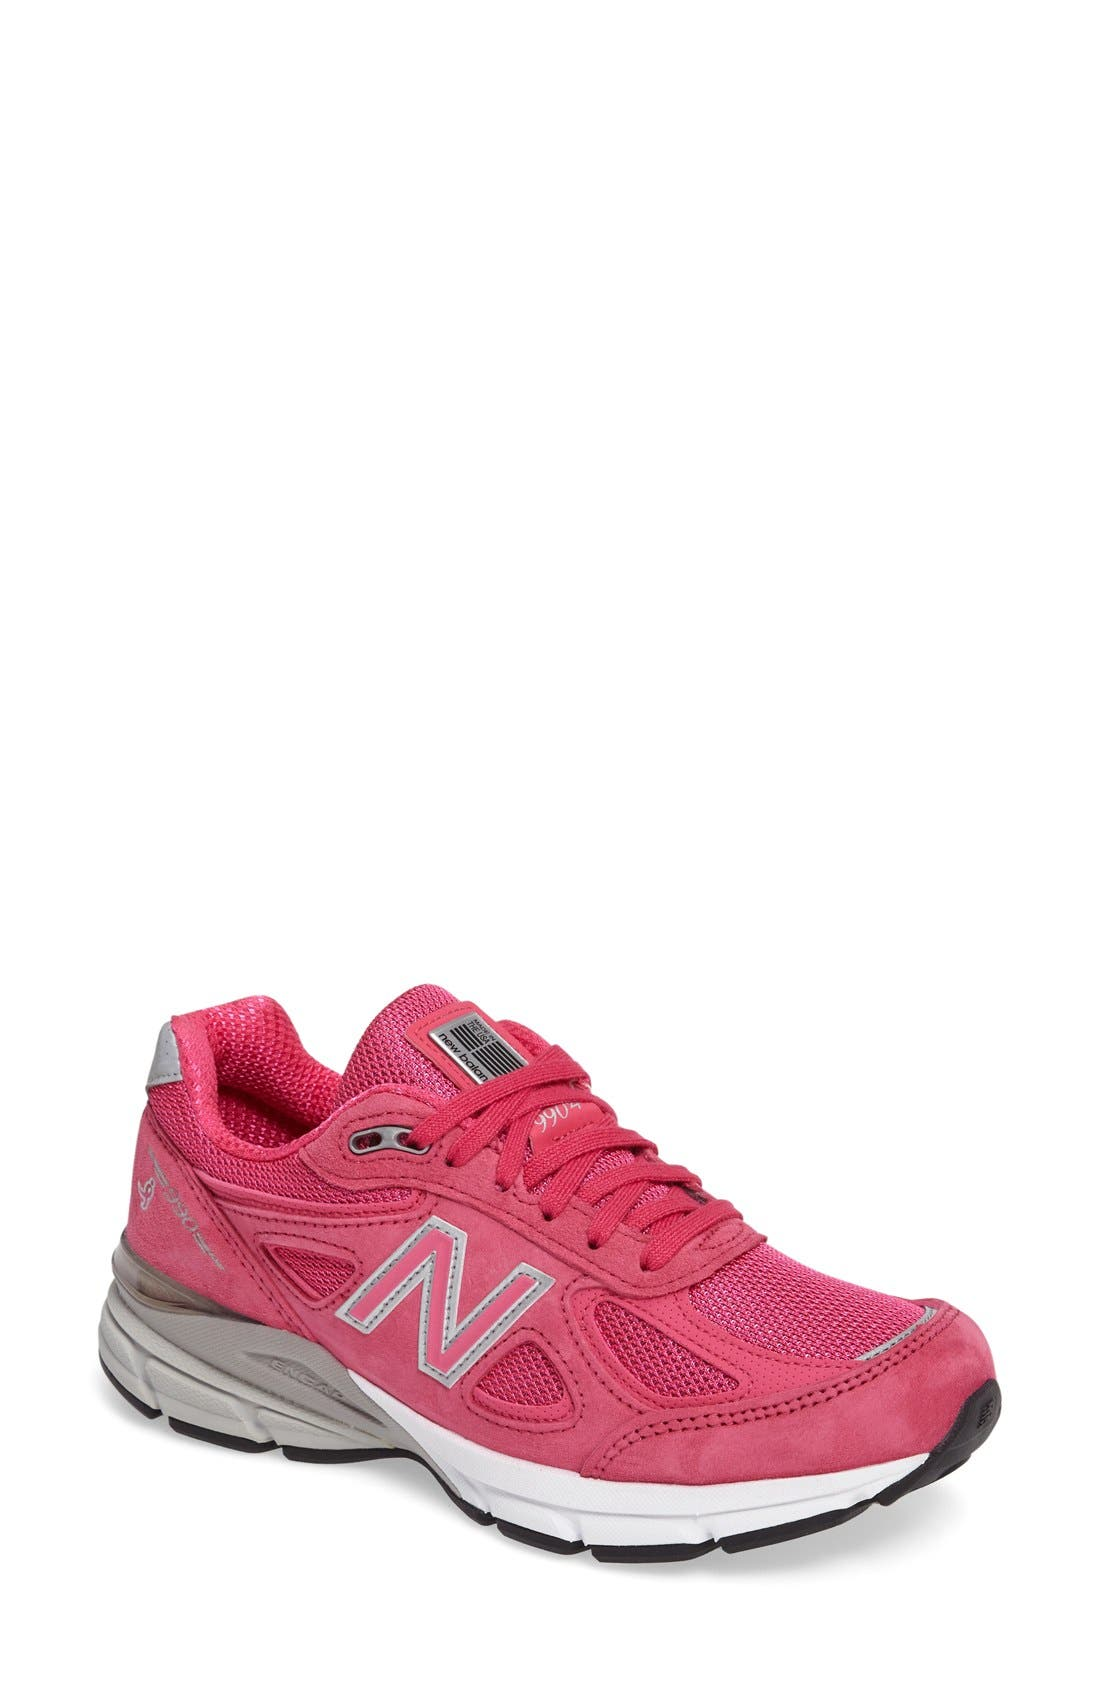 Main Image - New Balance '990 Premium' Running Shoe (Women)